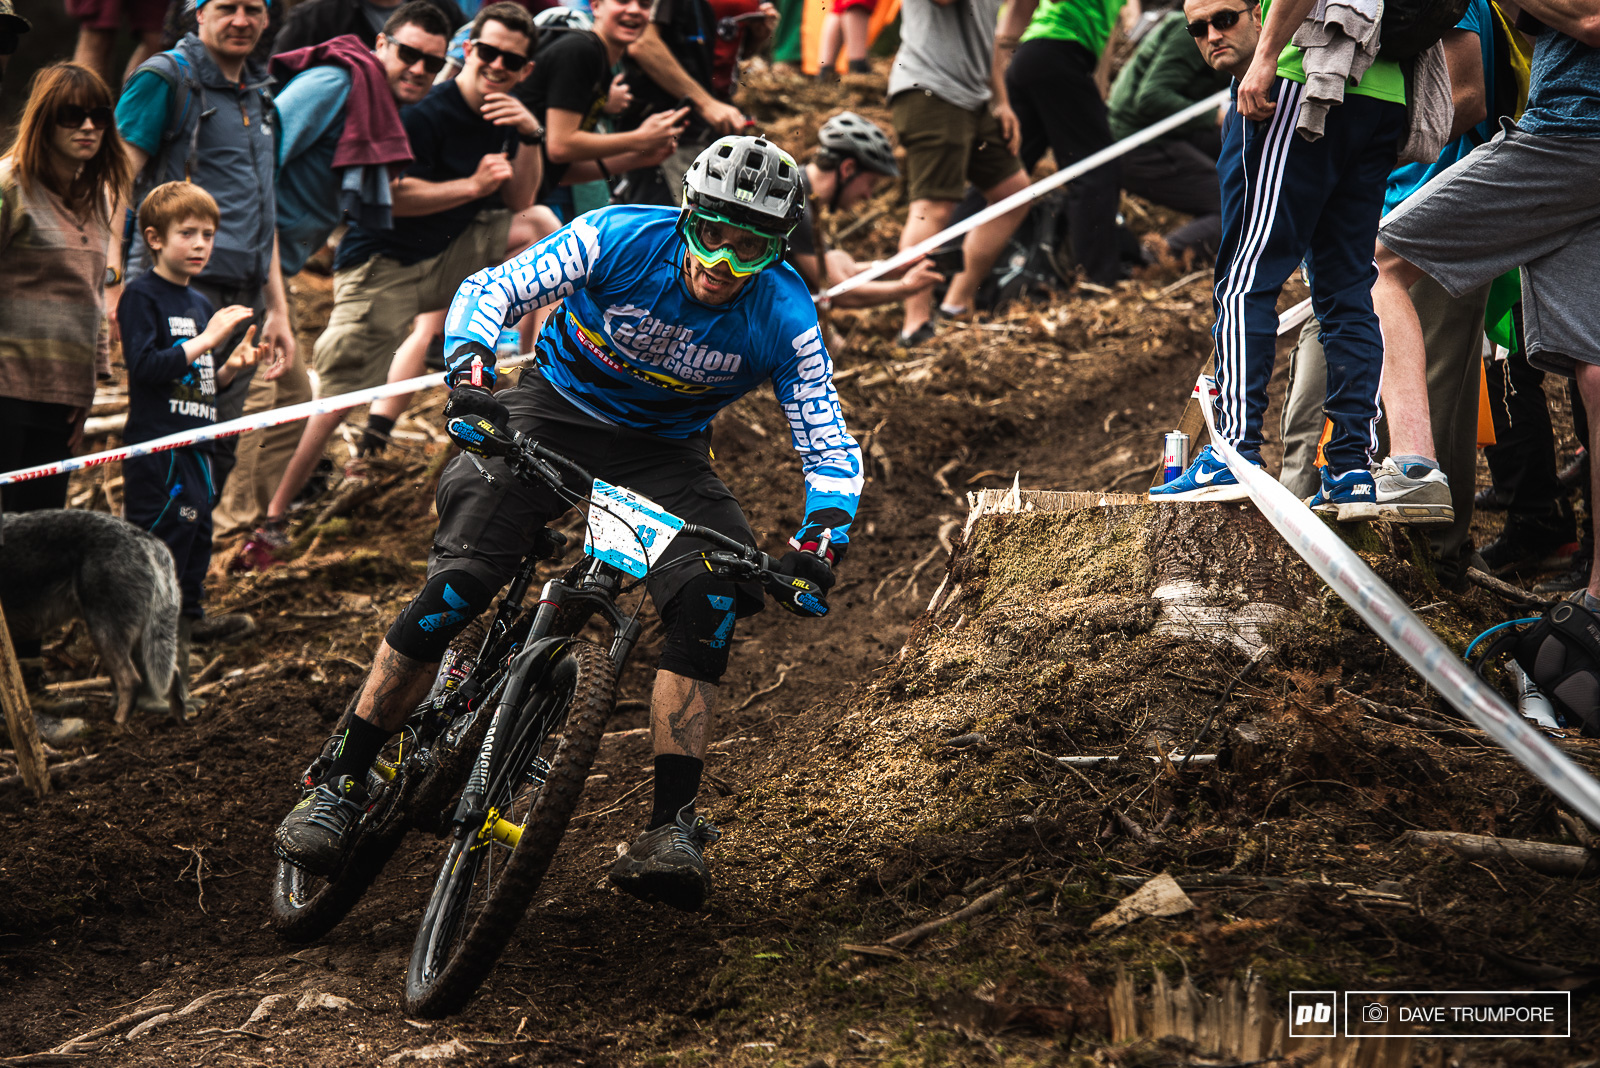 Foot out flat out and fast as for Sam Hill in the slippery Irish dirt.